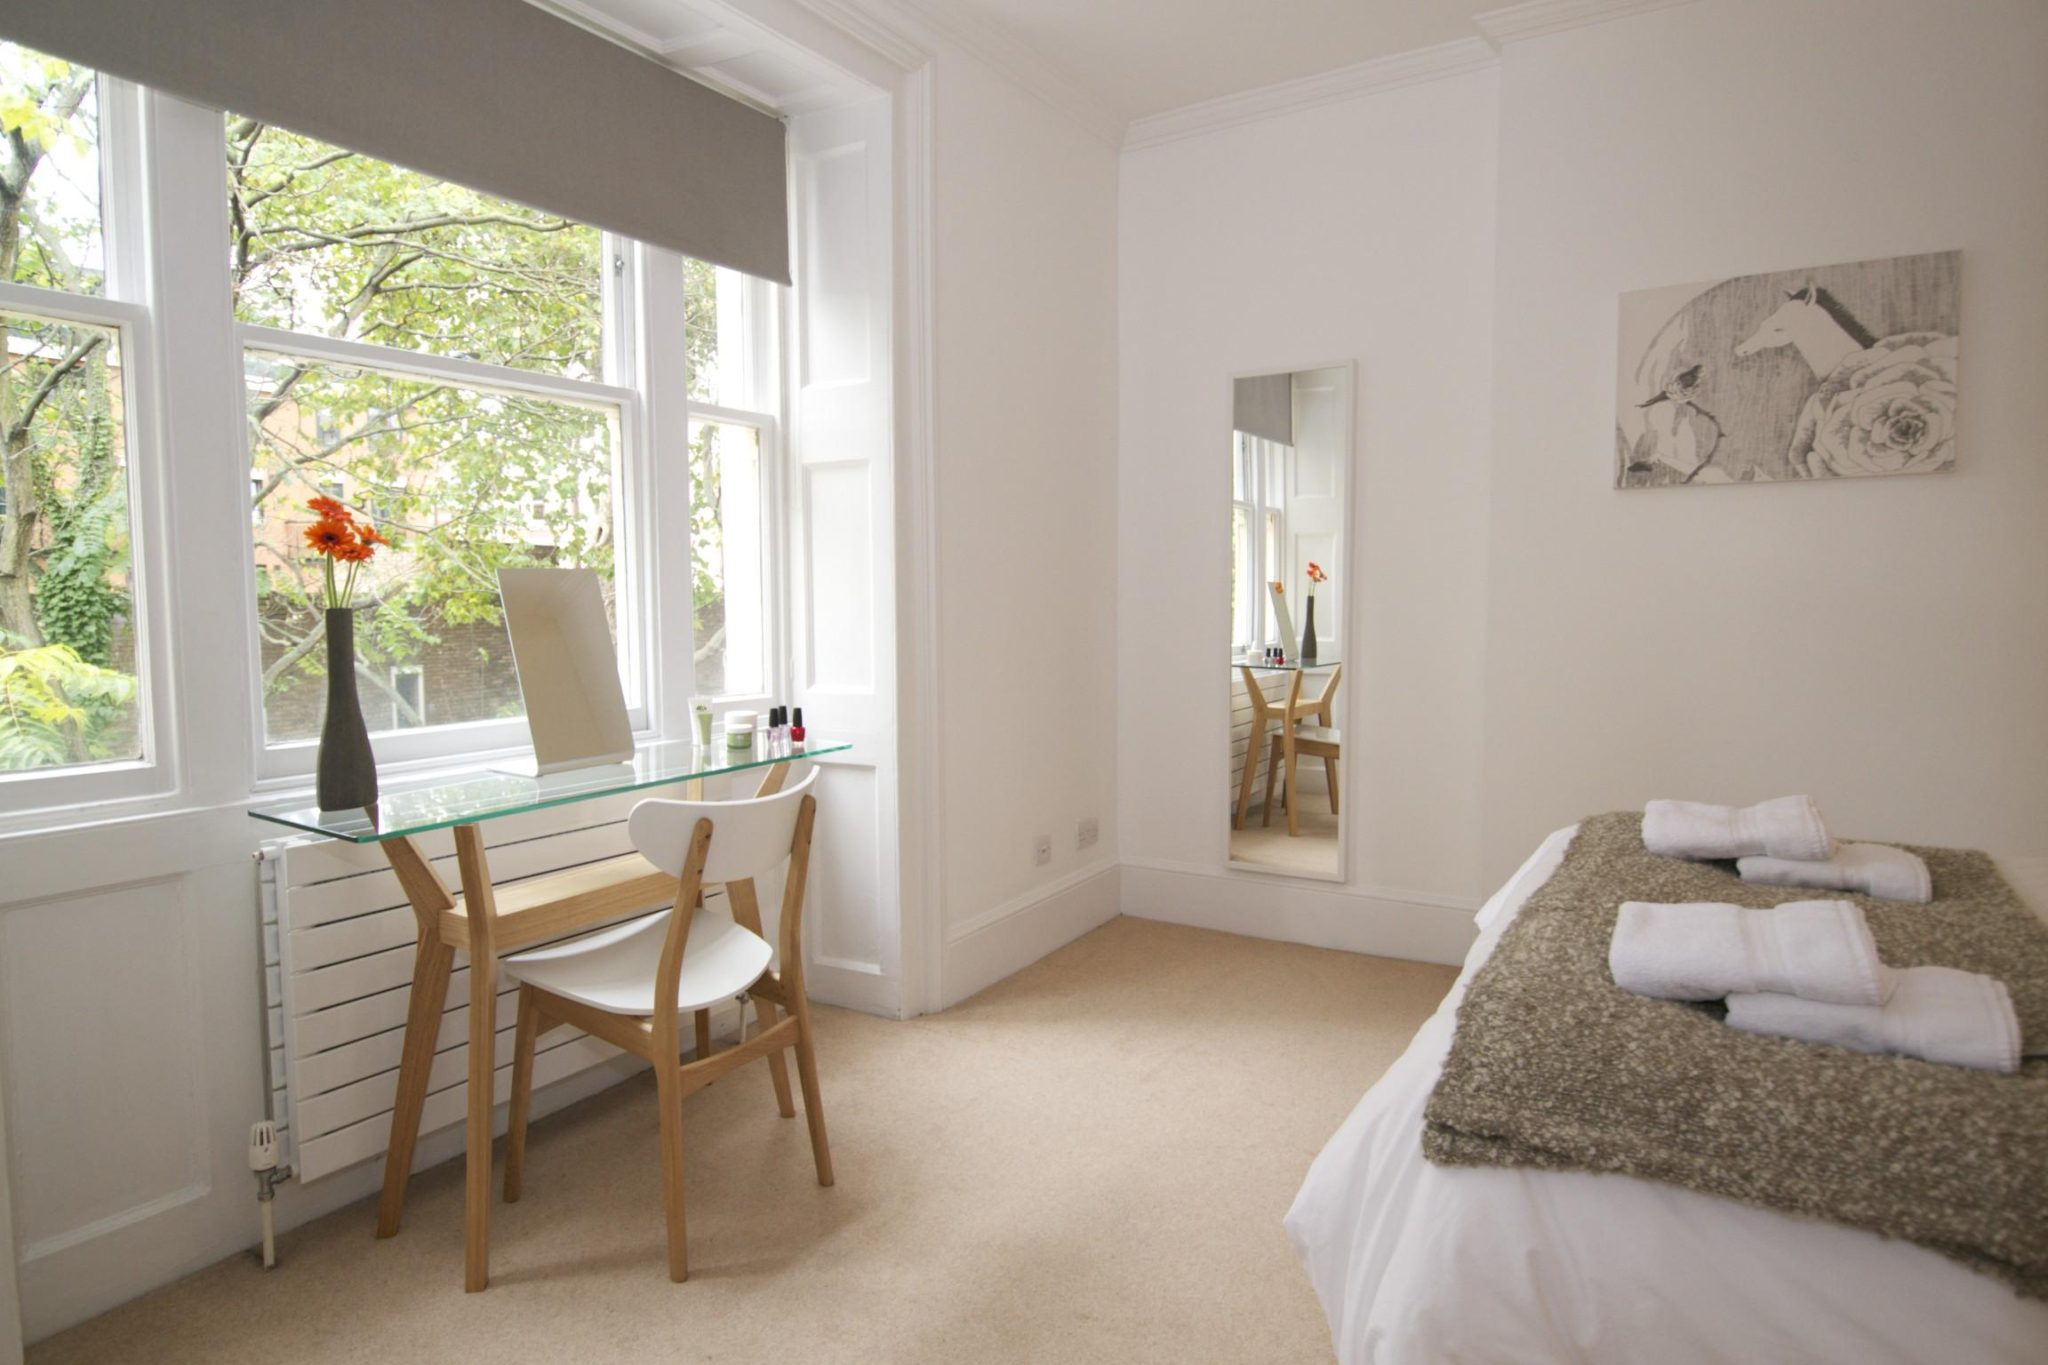 Looking-for-affordable-apartment-in-the-West-End?-why-not-book-our-Goodge-Street-Apartments-just-off-of-Bloomsbury-Street?-Call-today-for-the-best-rates